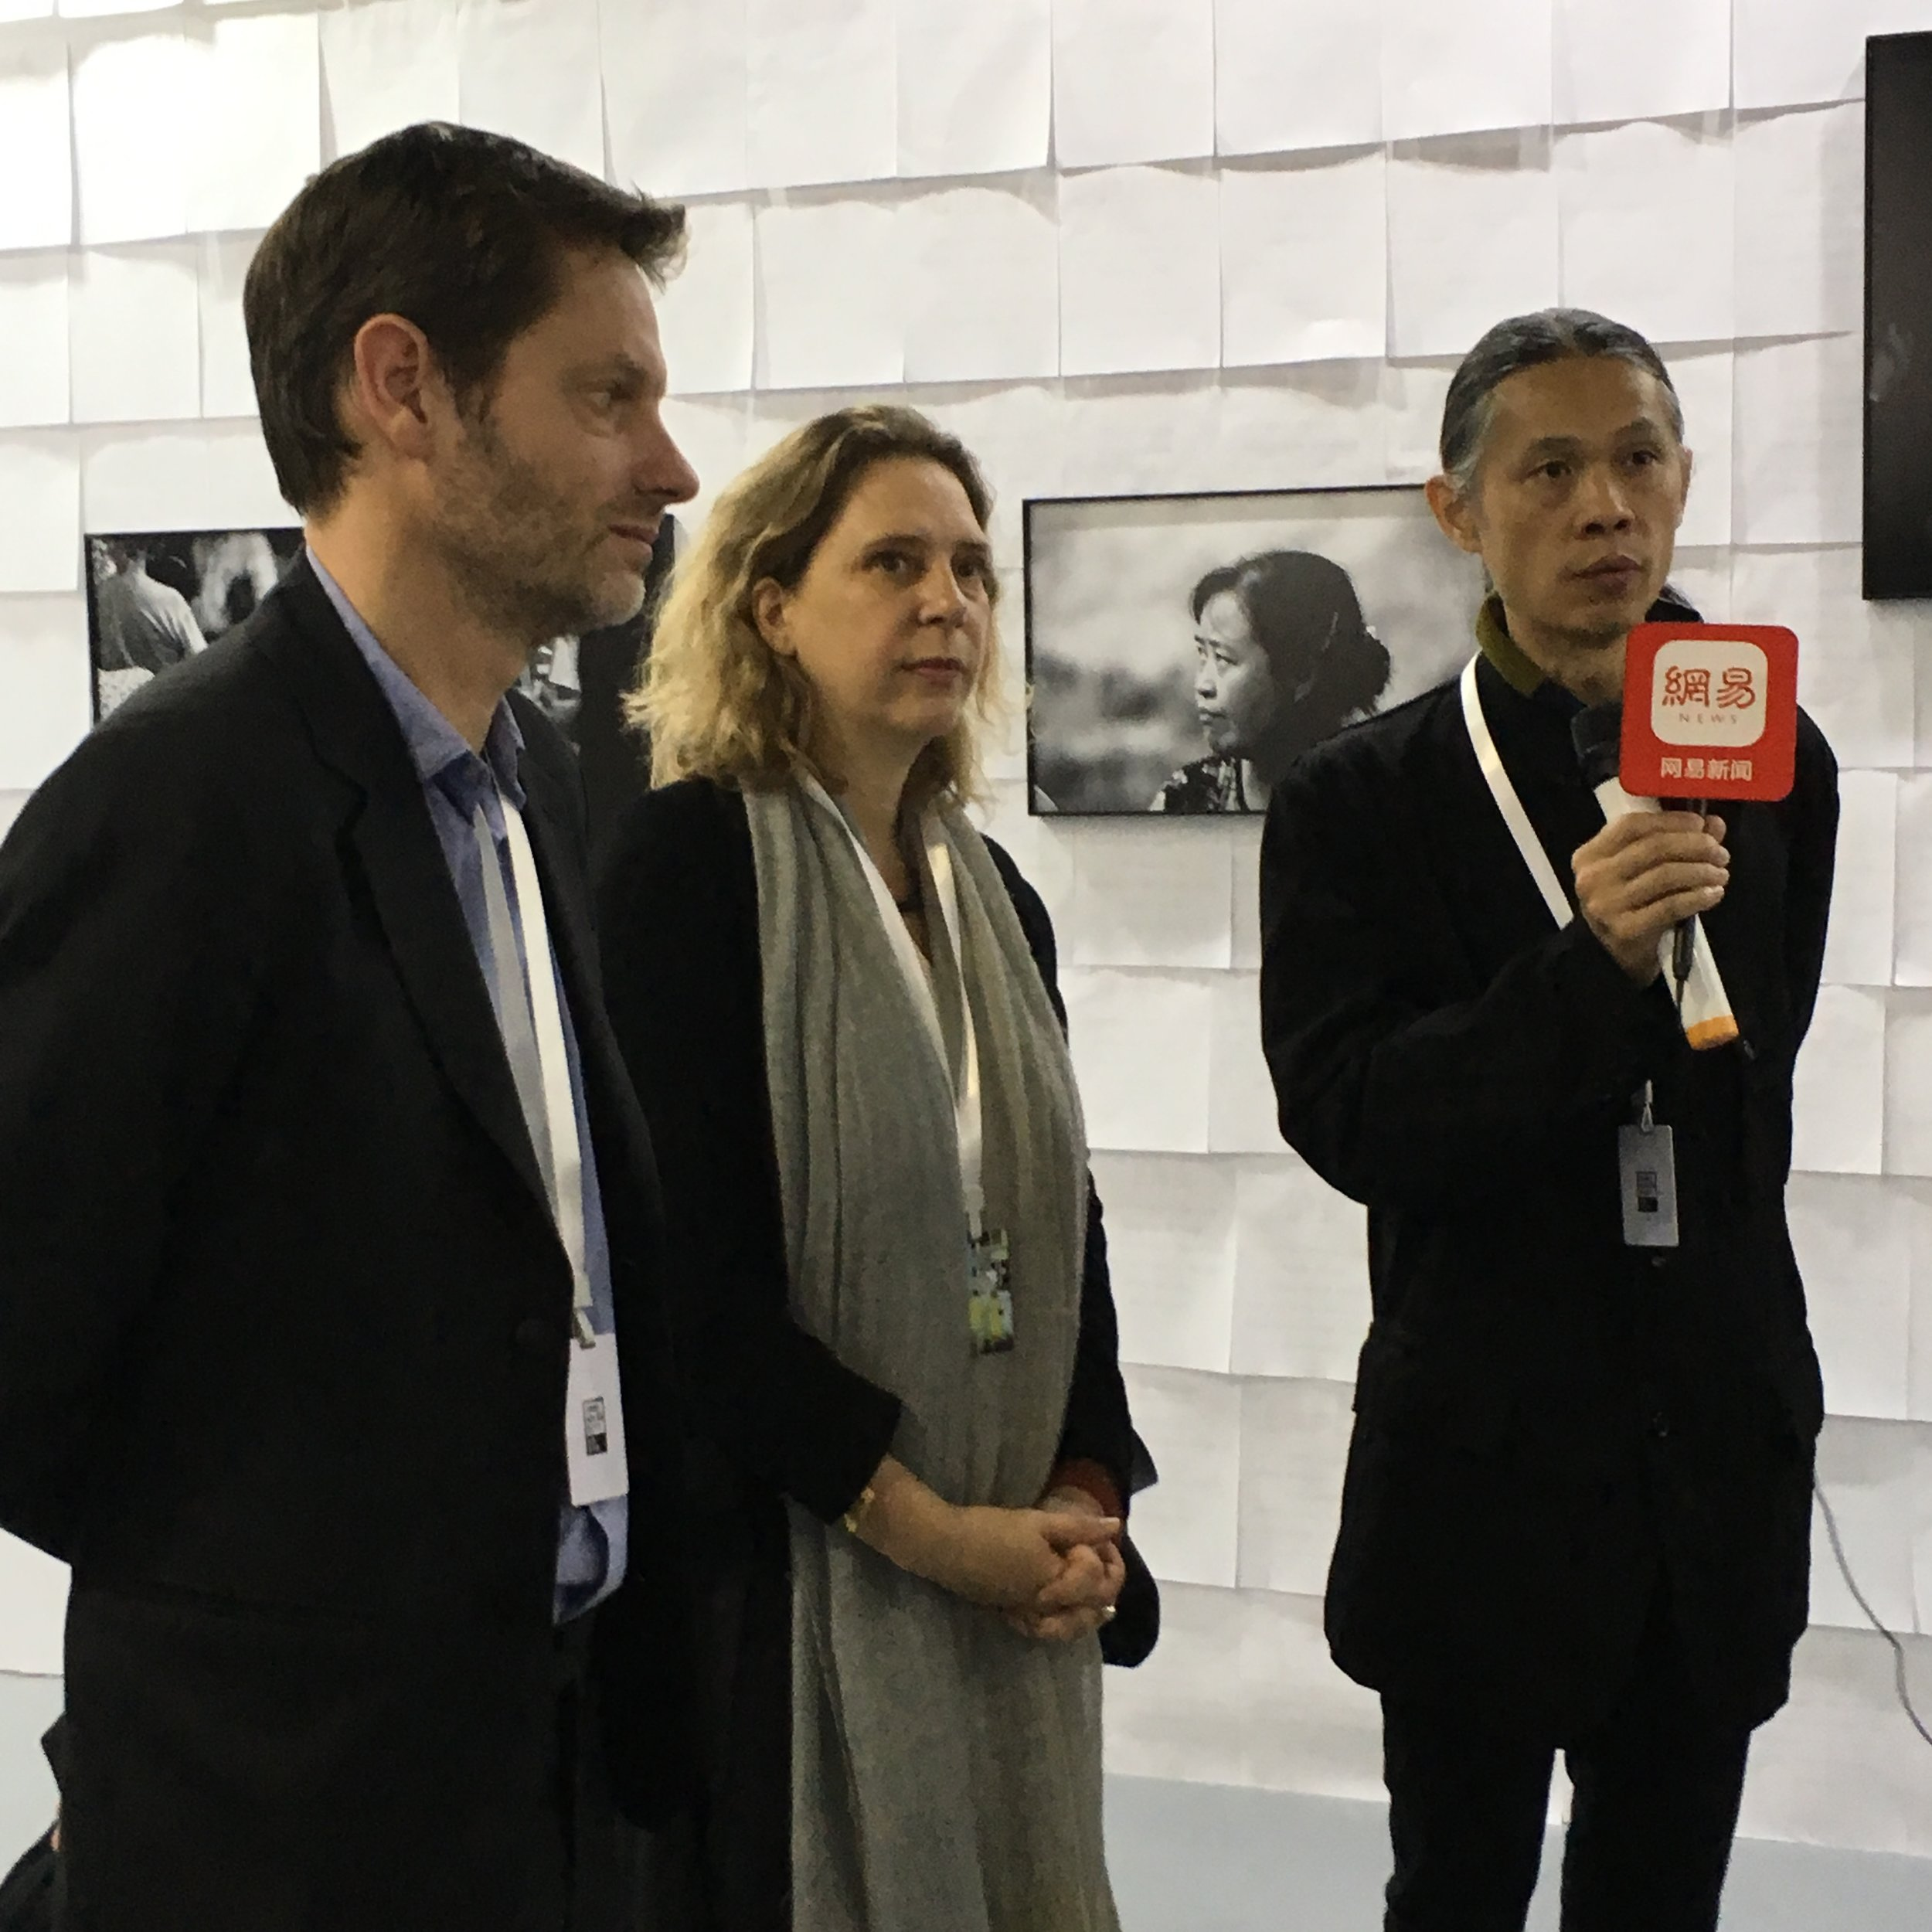 Festival preview before public opening, exhibition tour with (from left to right): Sam Stourdzé, Bérénice Angrémy, Rong Rong © Marine Cabos